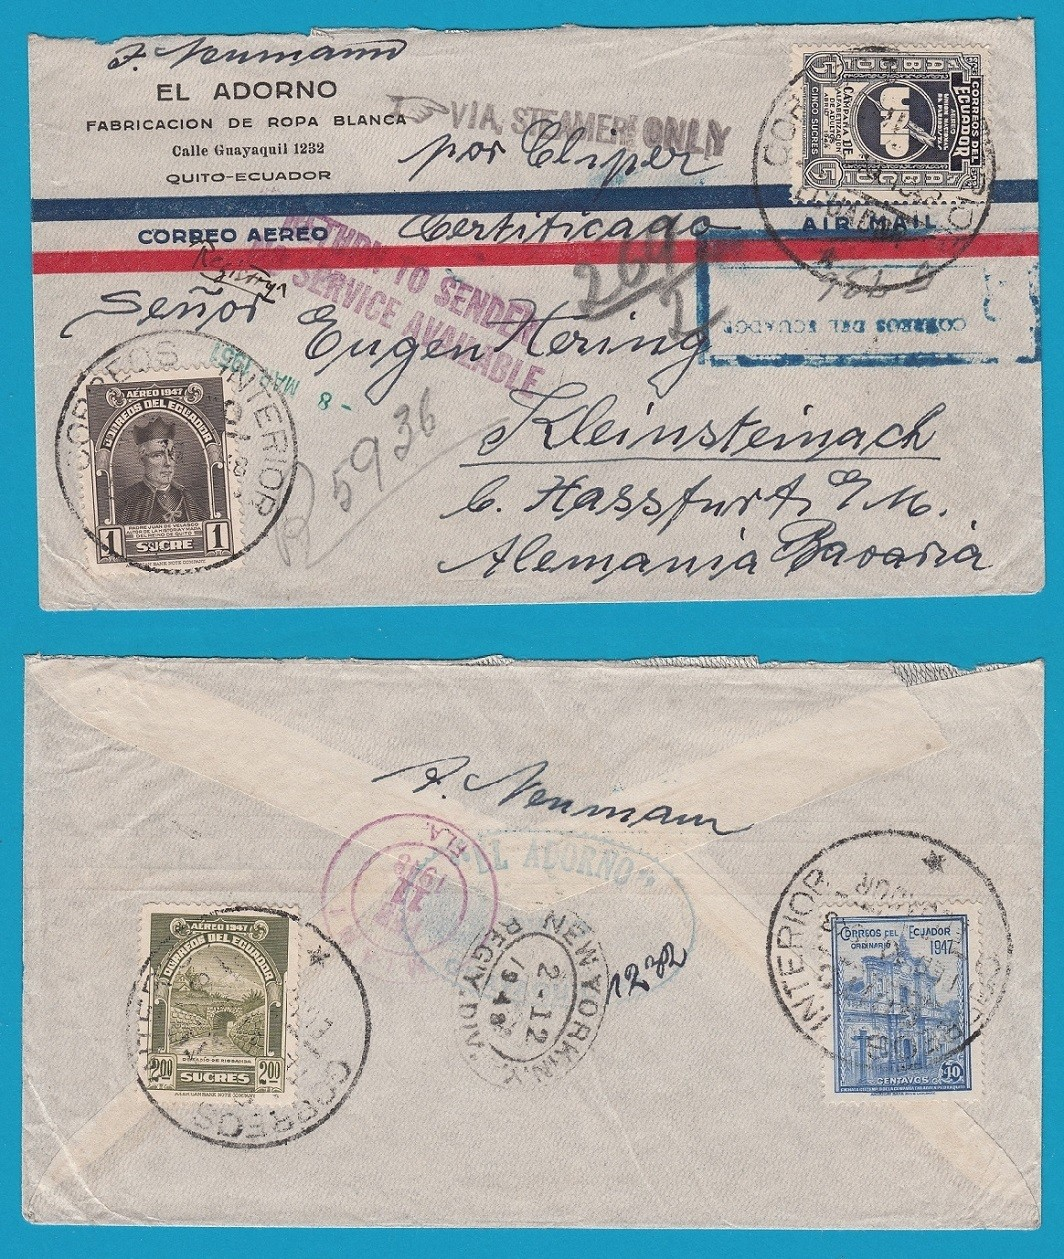 ECUADOR air cover 1948 Quito to Germany - Service suspended